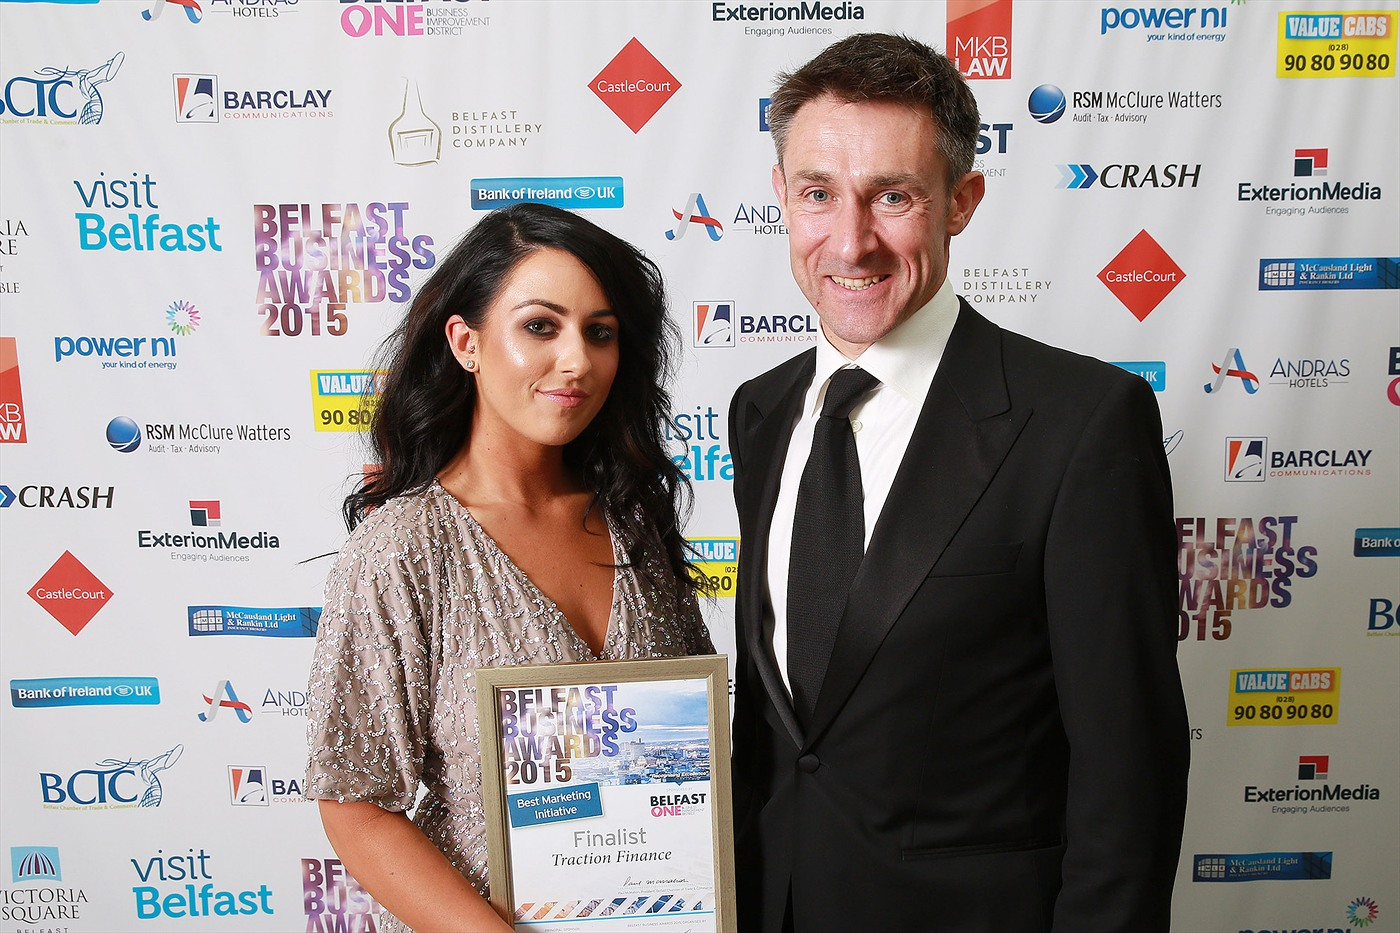 Belfast Business Awards 2015